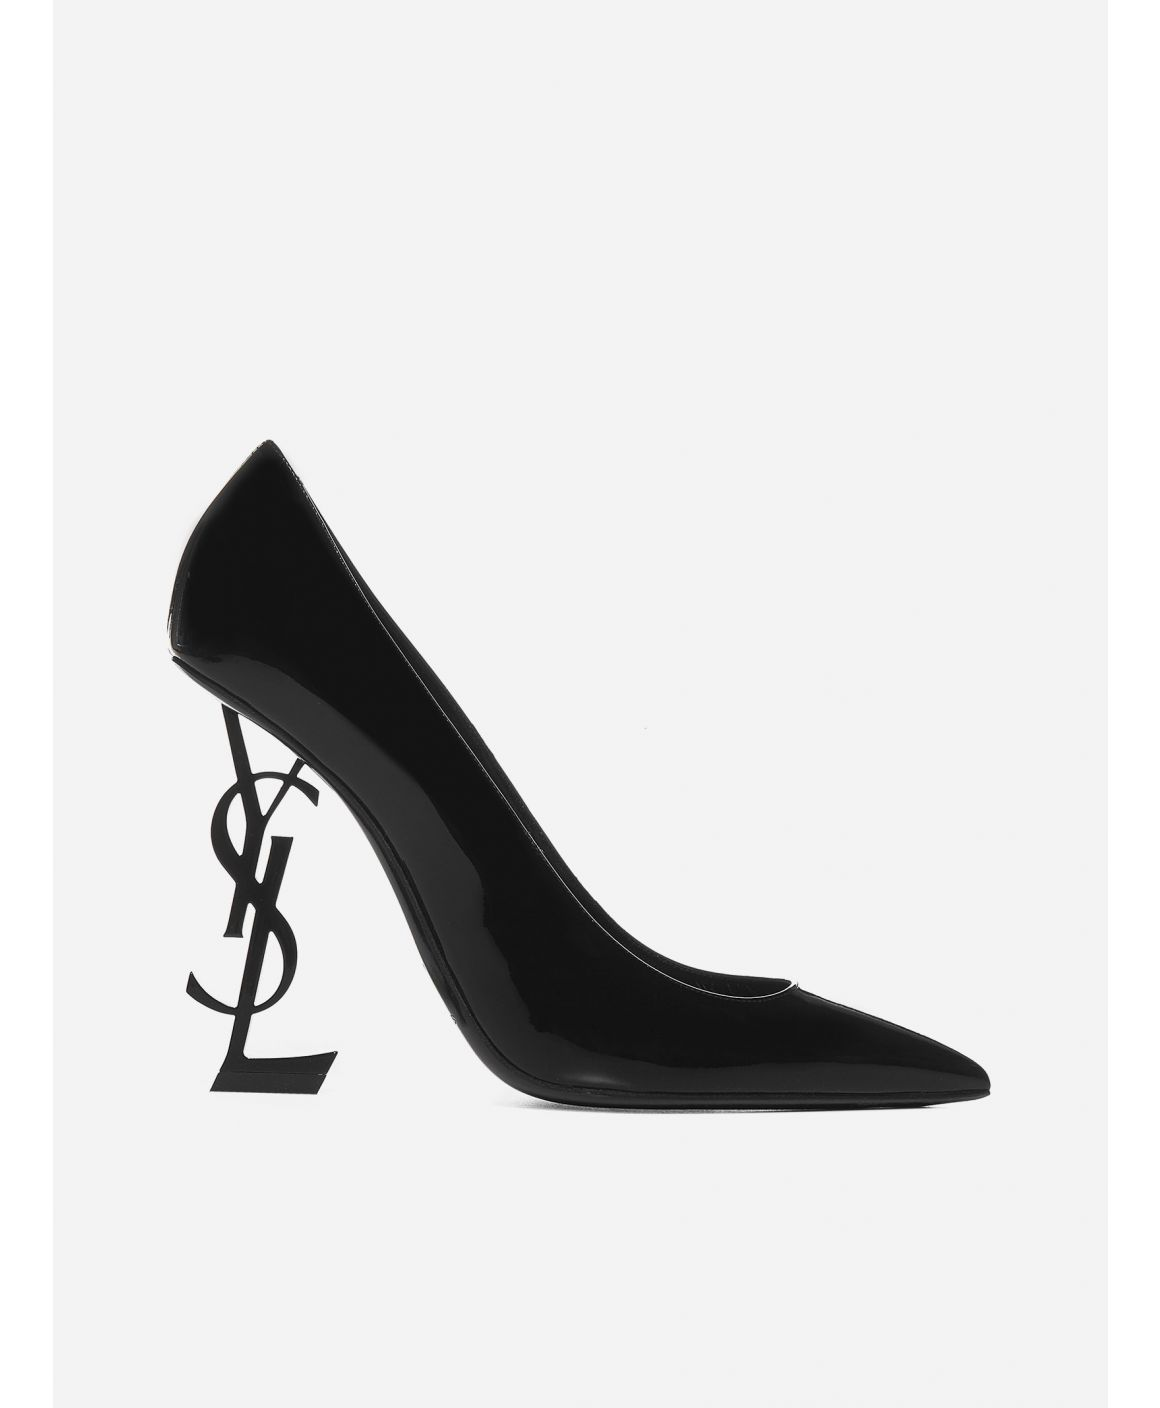 YSL Opyum patent leather pumps